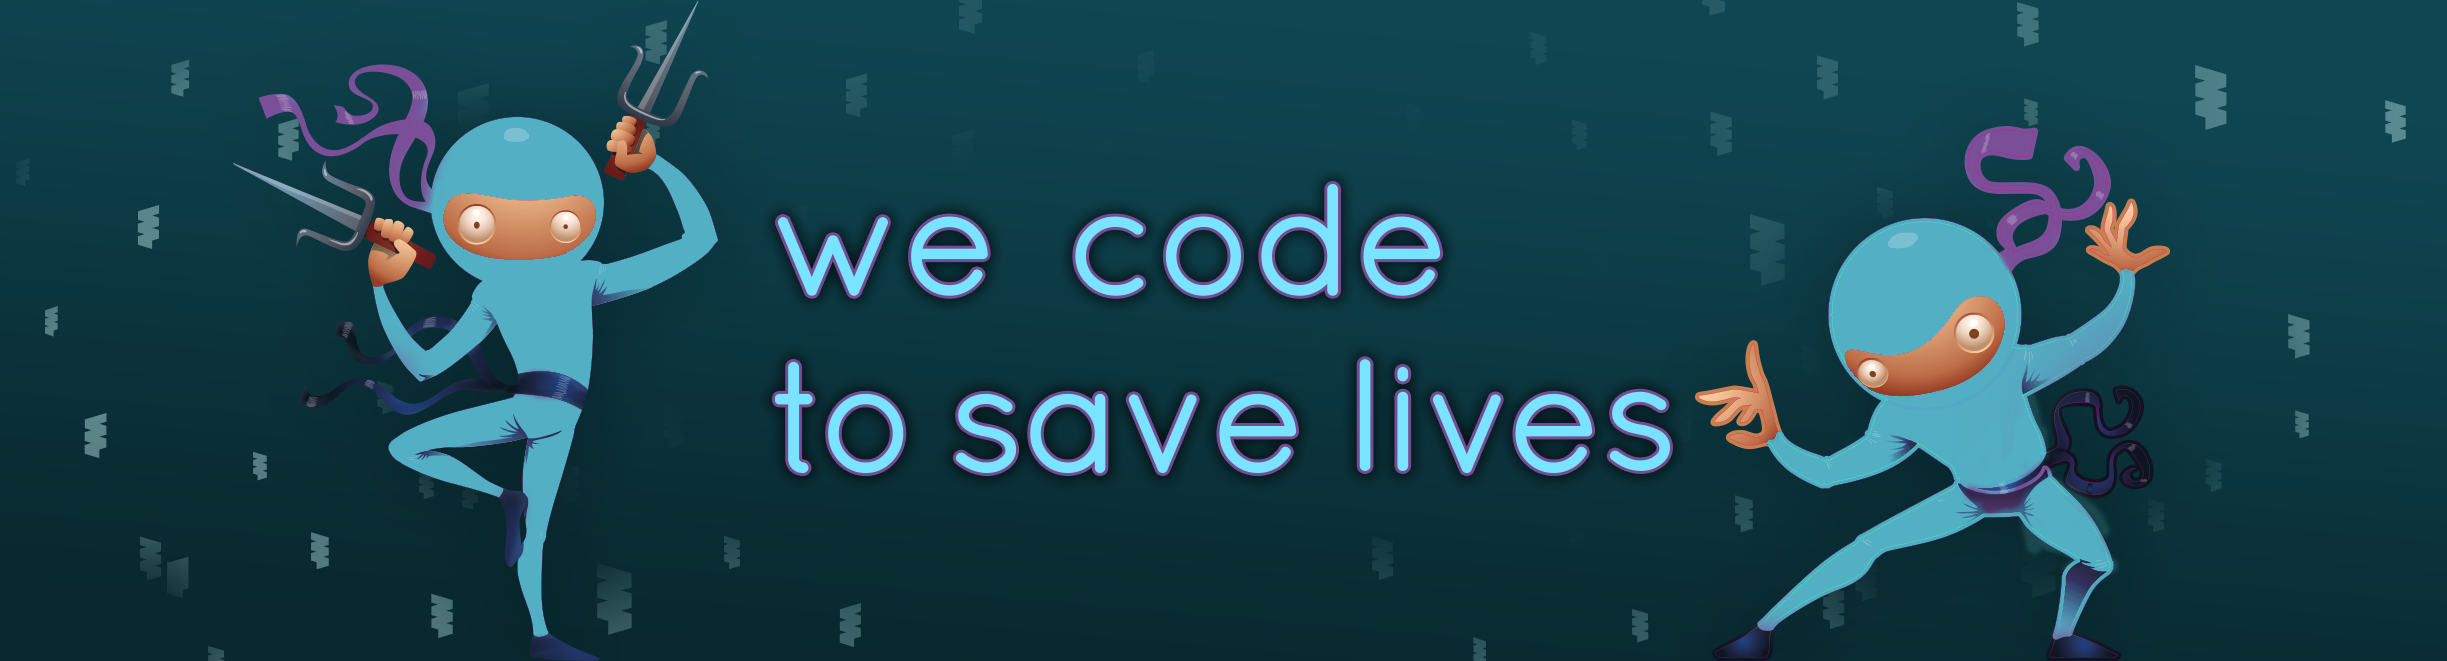 we code to save lives